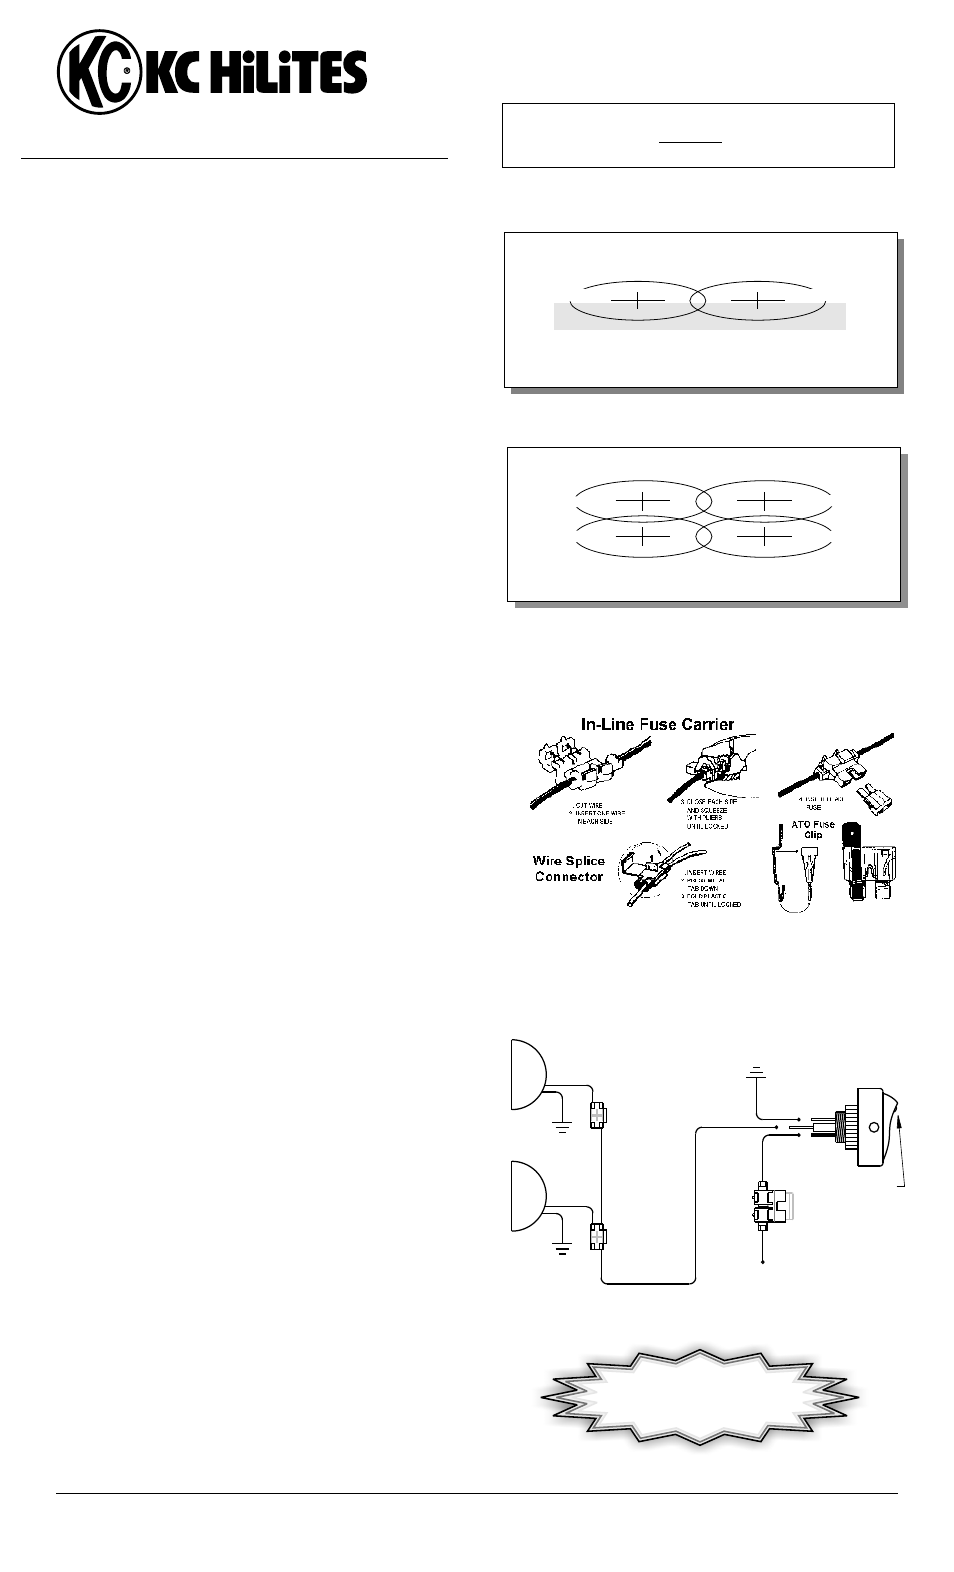 shed wiring kit shed image wiring diagram kc hilites daylighter wiring diagram solidfonts on shed wiring kit